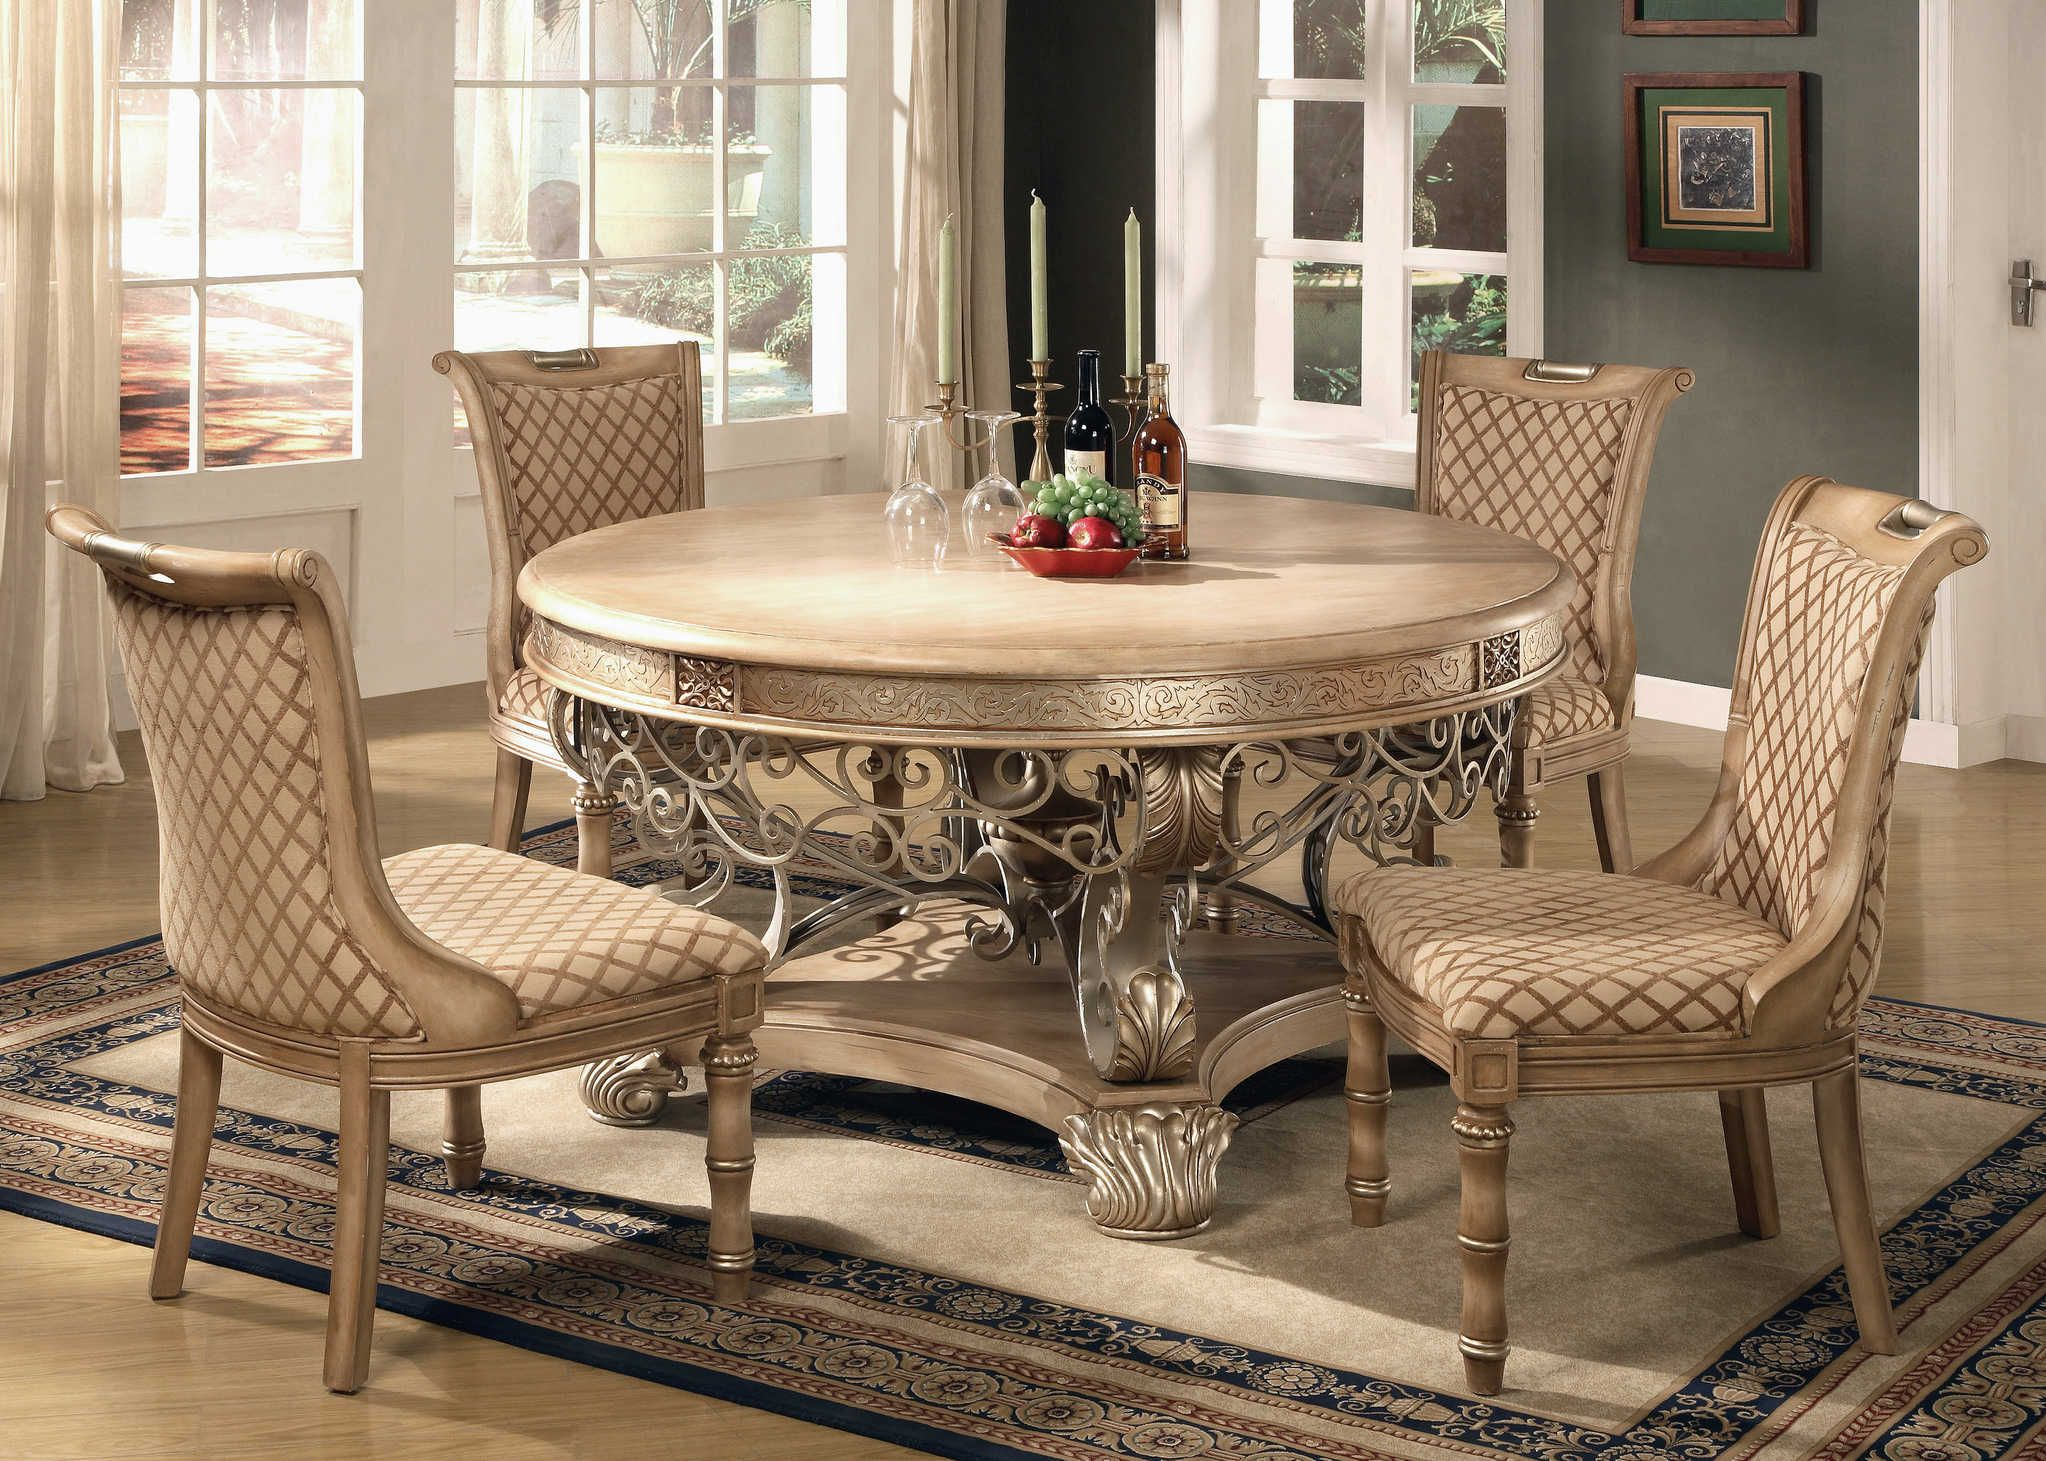 Dining Room Attractive Small Formal Dining Room Ideas With White Alluring Traditional Dining Room Set Decorating Design